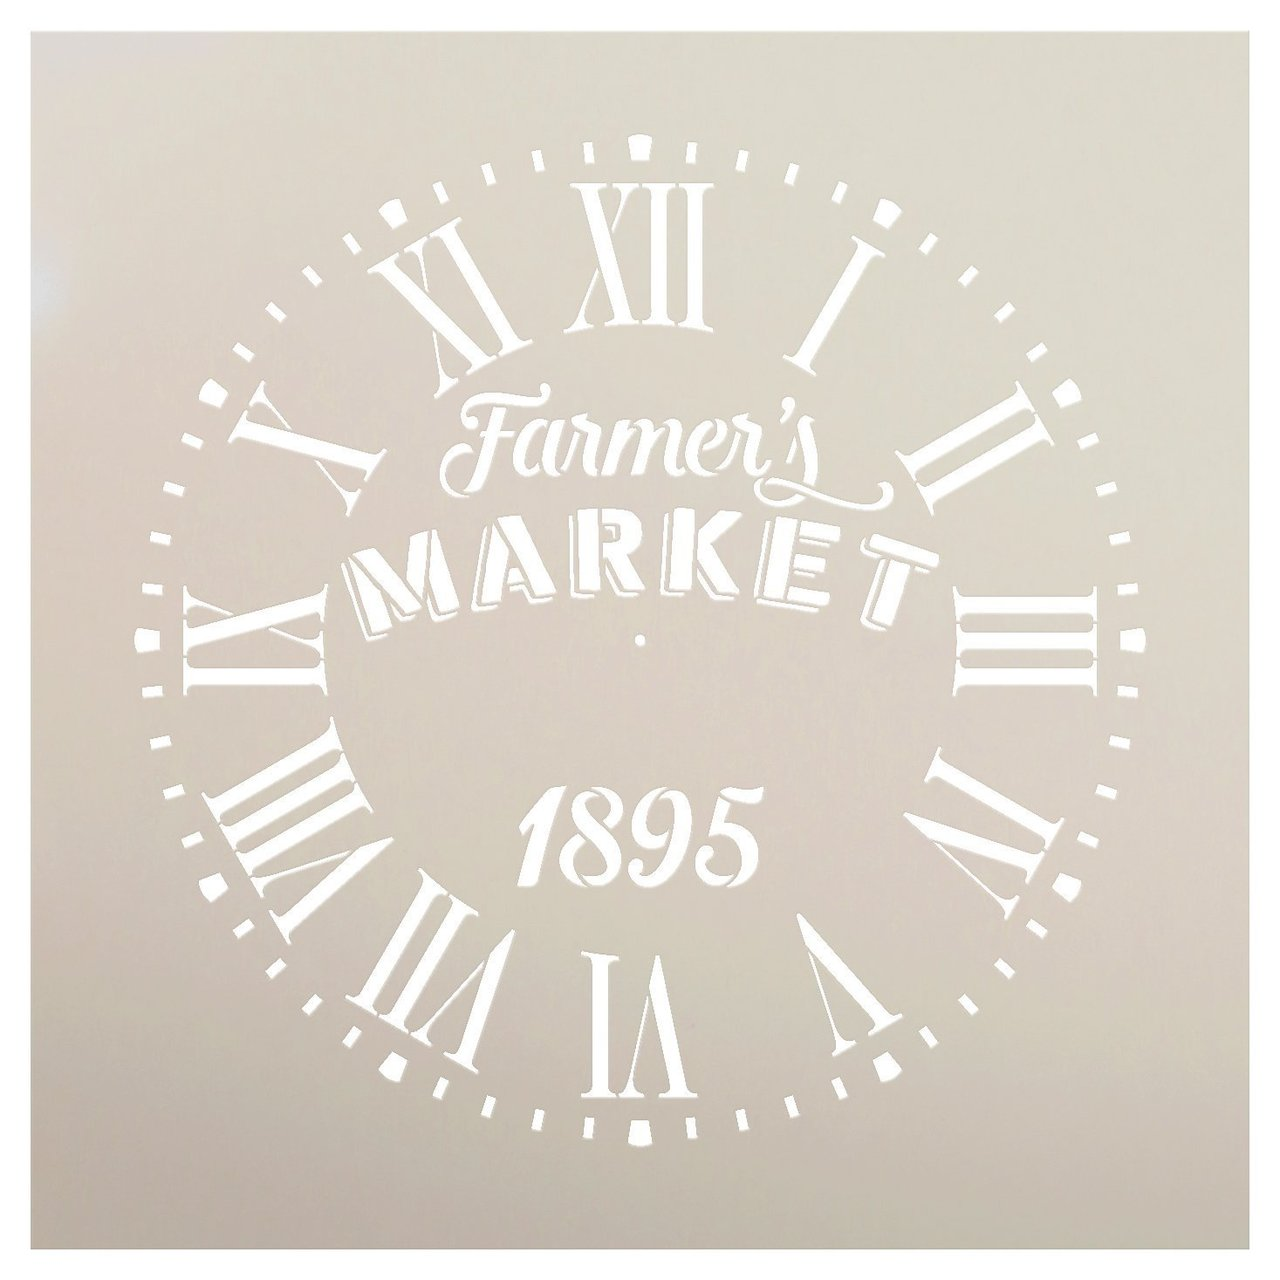 "Round Clock Stencil Roman Numerals - Farmers Market Letters - DIY Painting Vintage Rustic Farmhouse Country Home Decor Walls - Select Size (20"")"